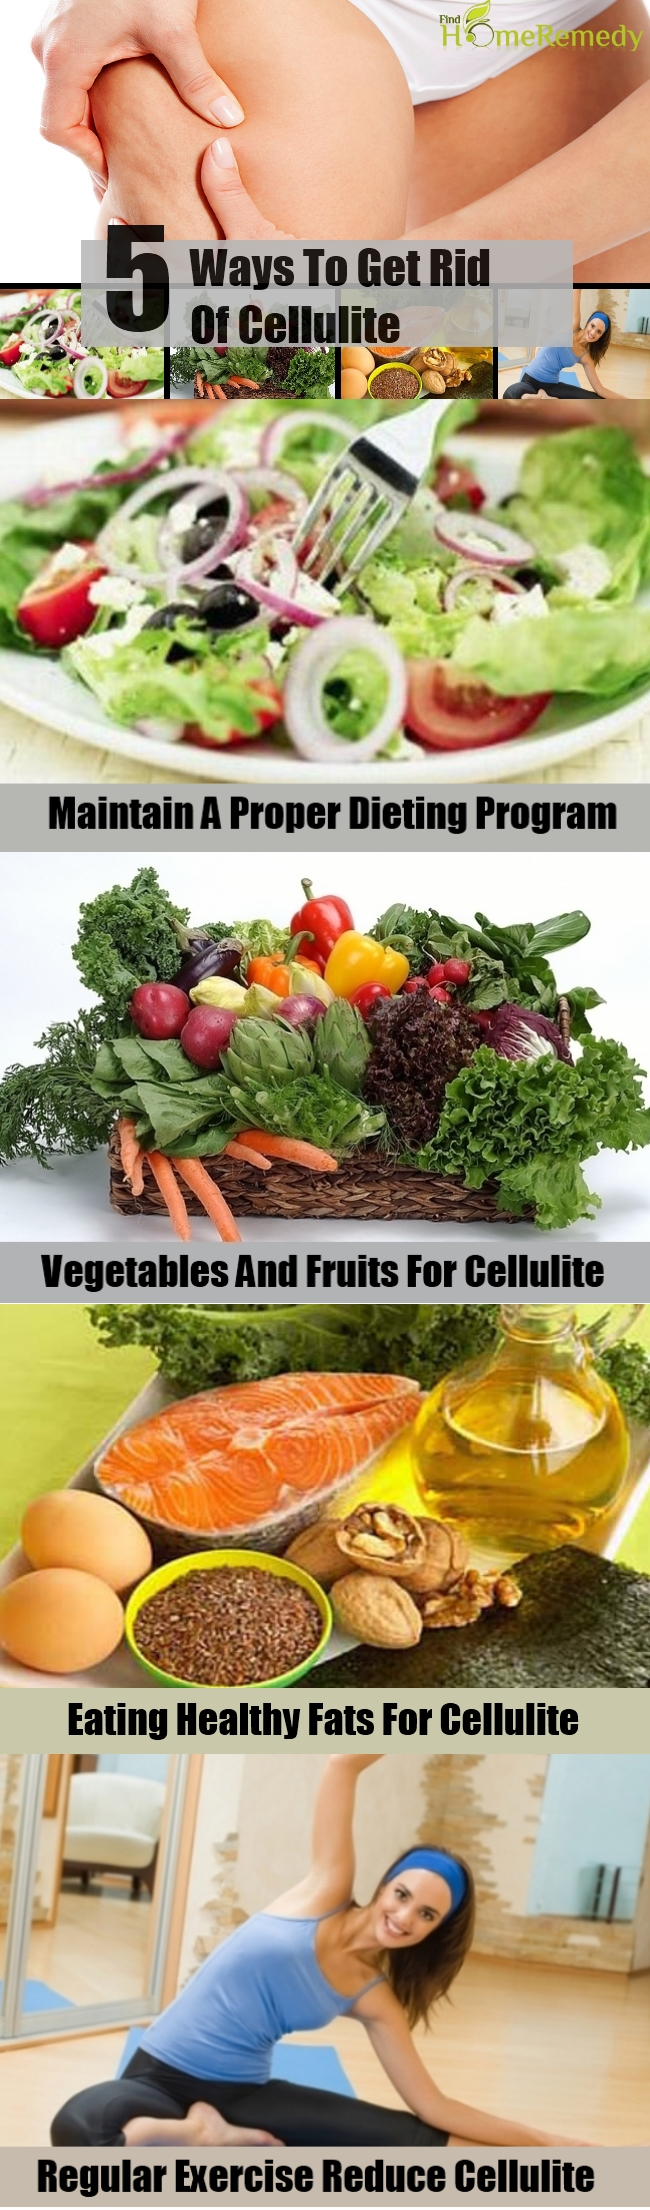 5 Ways To Get Rid Of Cellulite